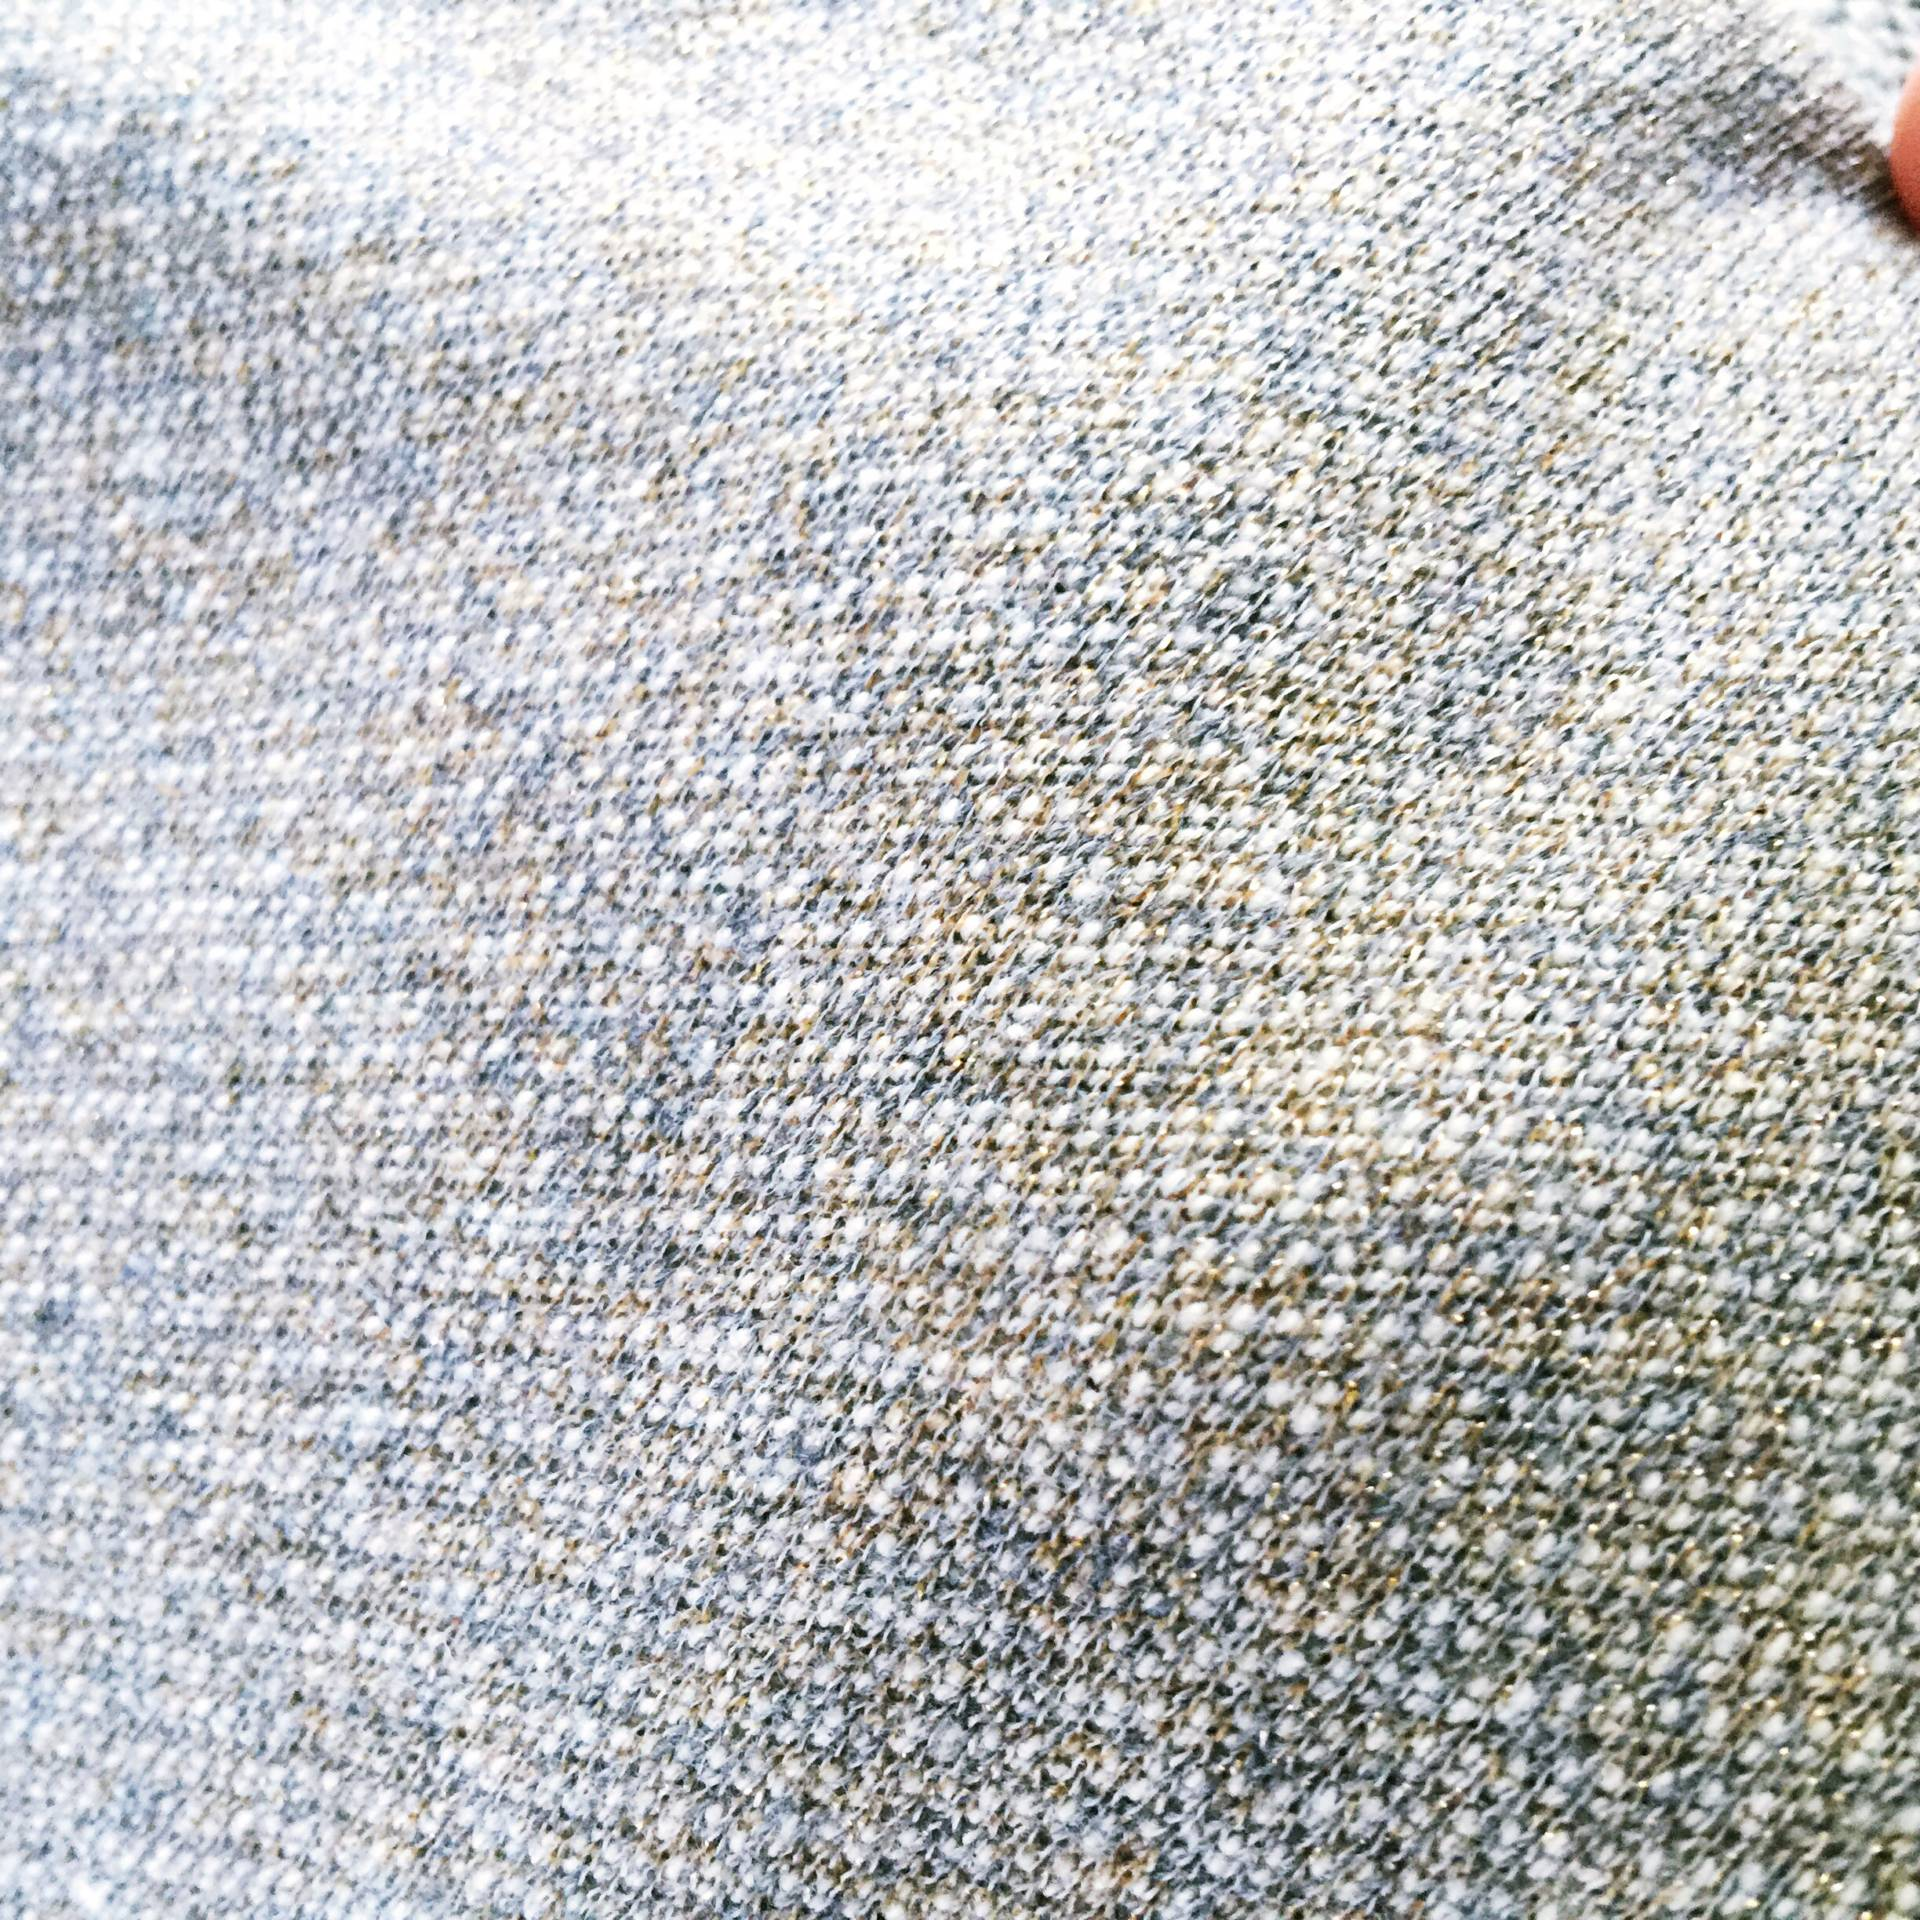 Shimmer French Terry for a cozy sweatshirt!